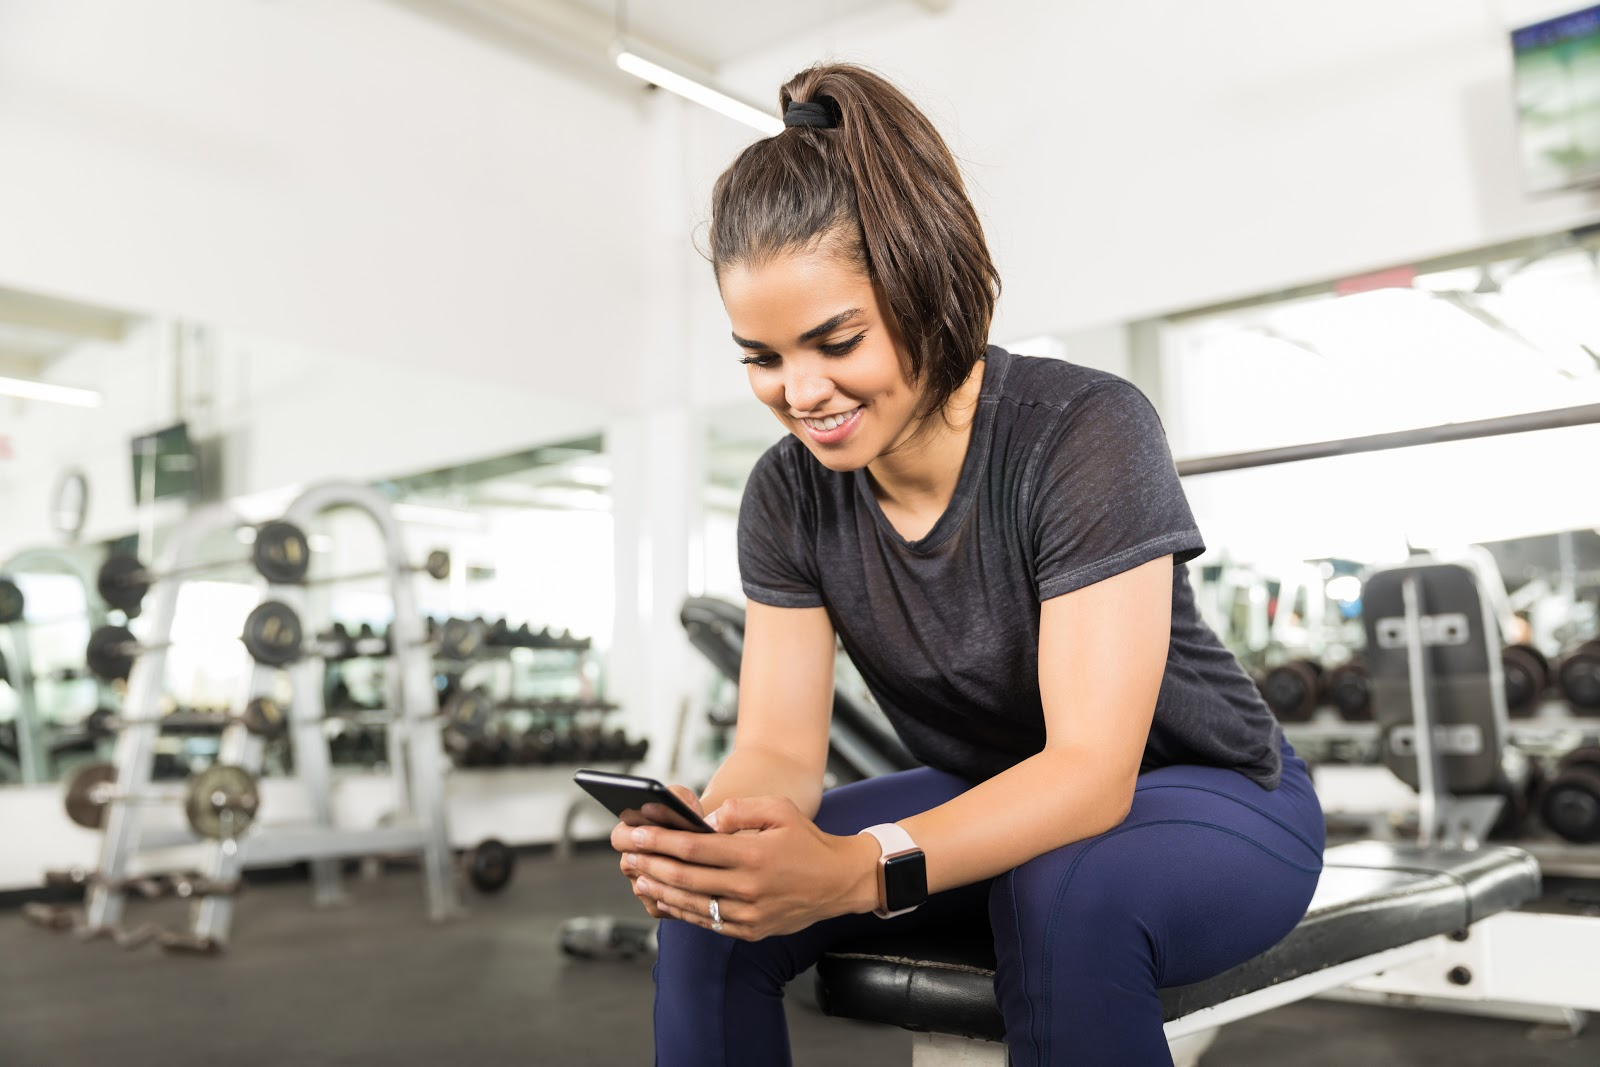 sms for gyms